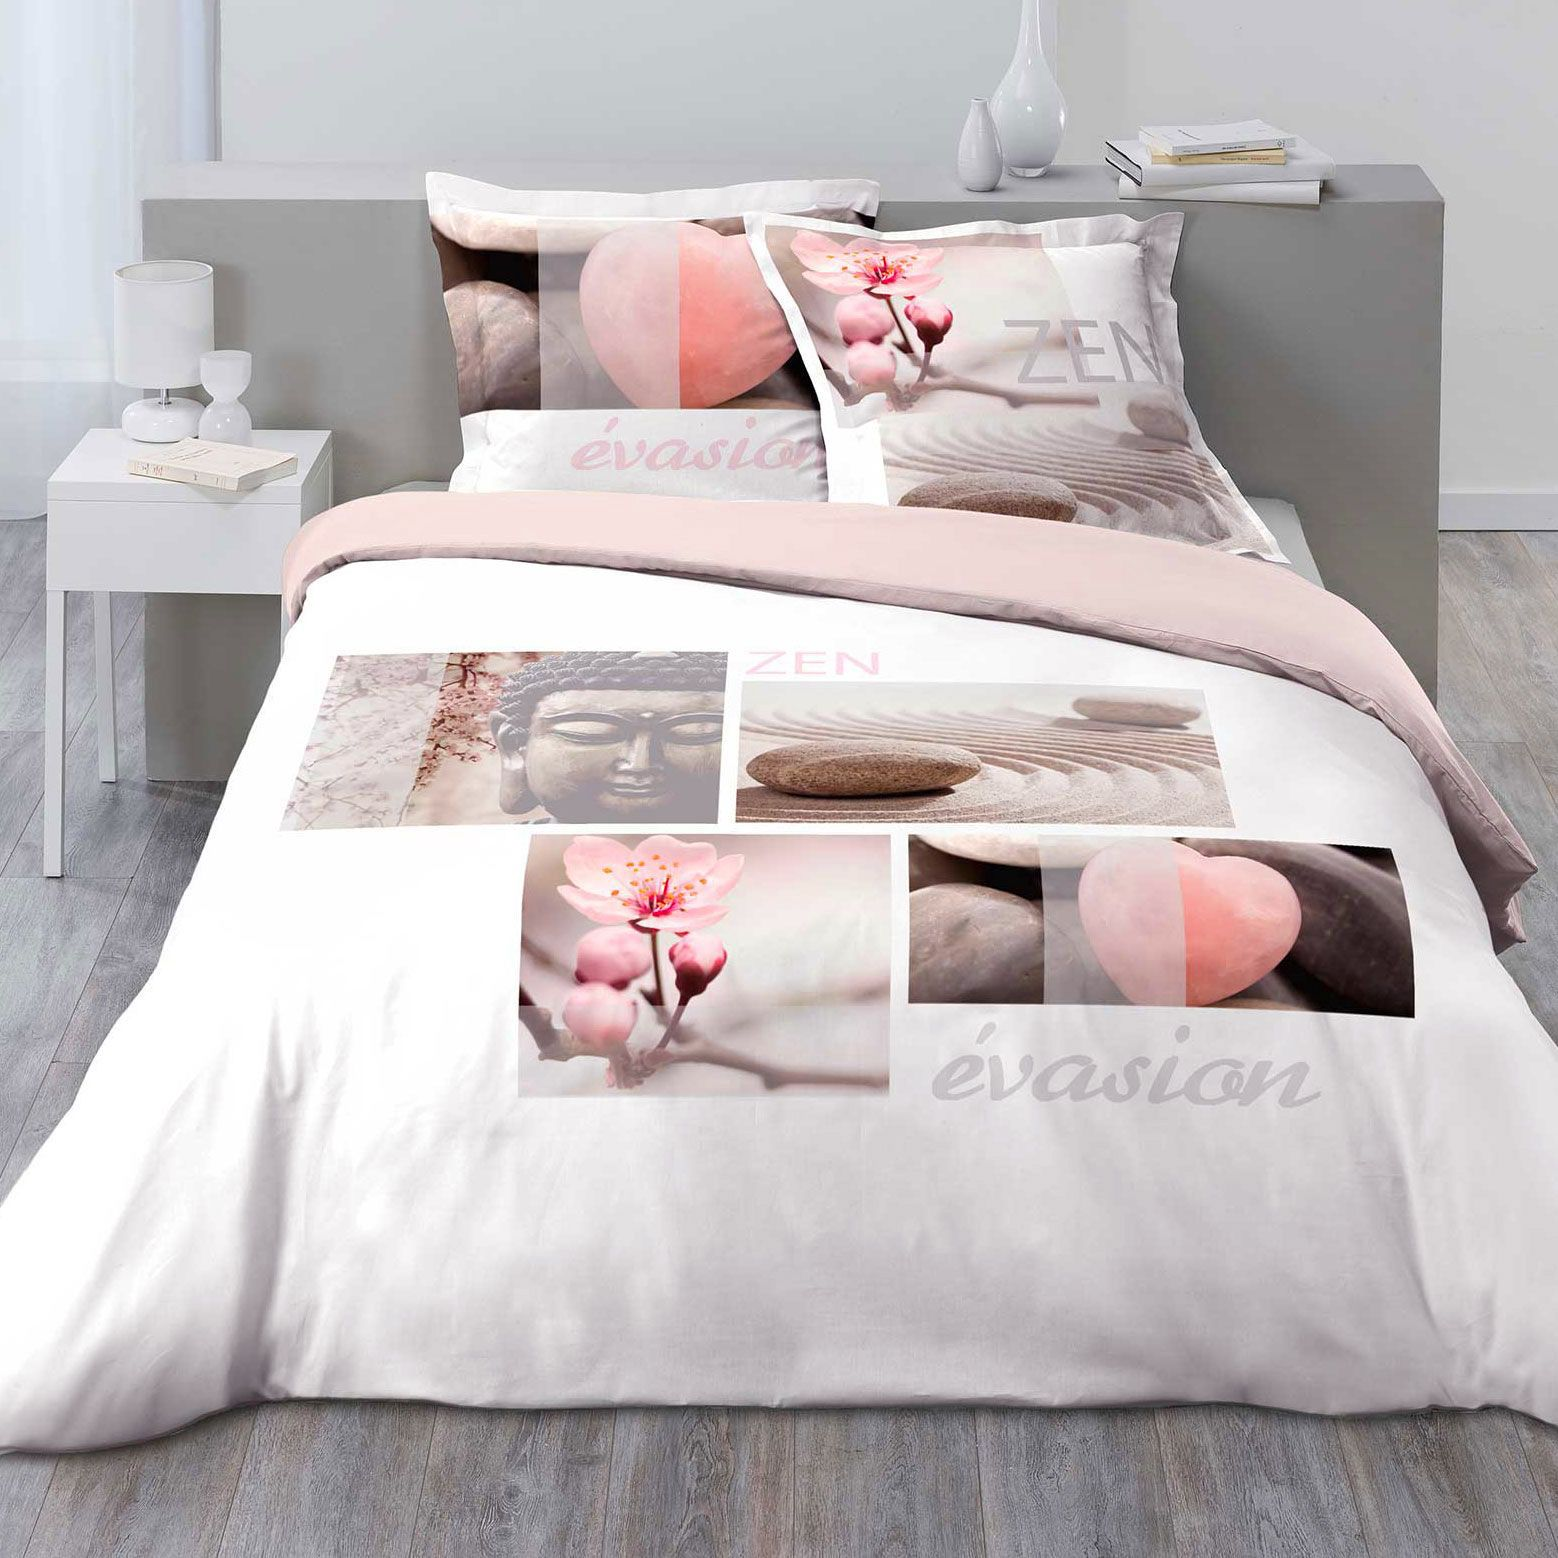 housse de couette et deux taies evasion zen 100 coton 240 cm rose p le housse de couette. Black Bedroom Furniture Sets. Home Design Ideas